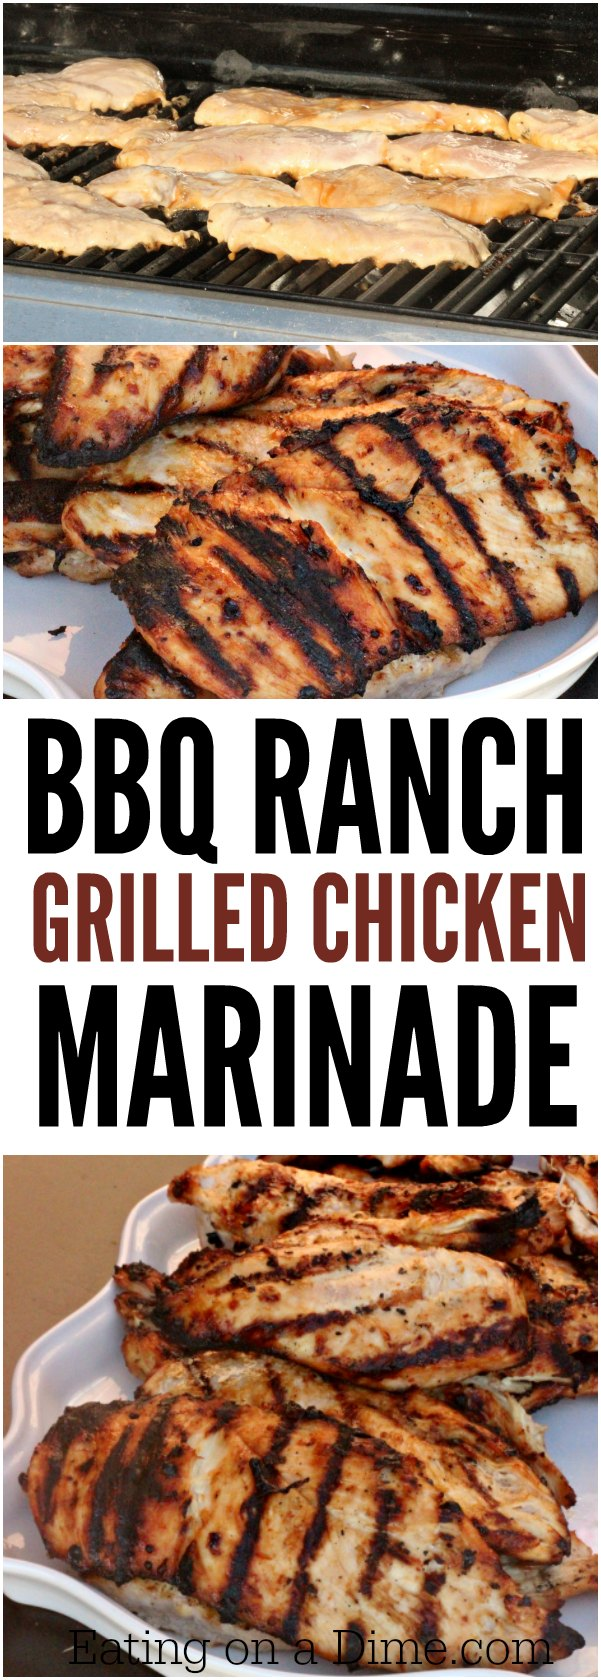 One of our favorite chicken marinades - bbq ranch grilled chicken marinade. This is the one of the best grilled chicken marinades that I know you will love.